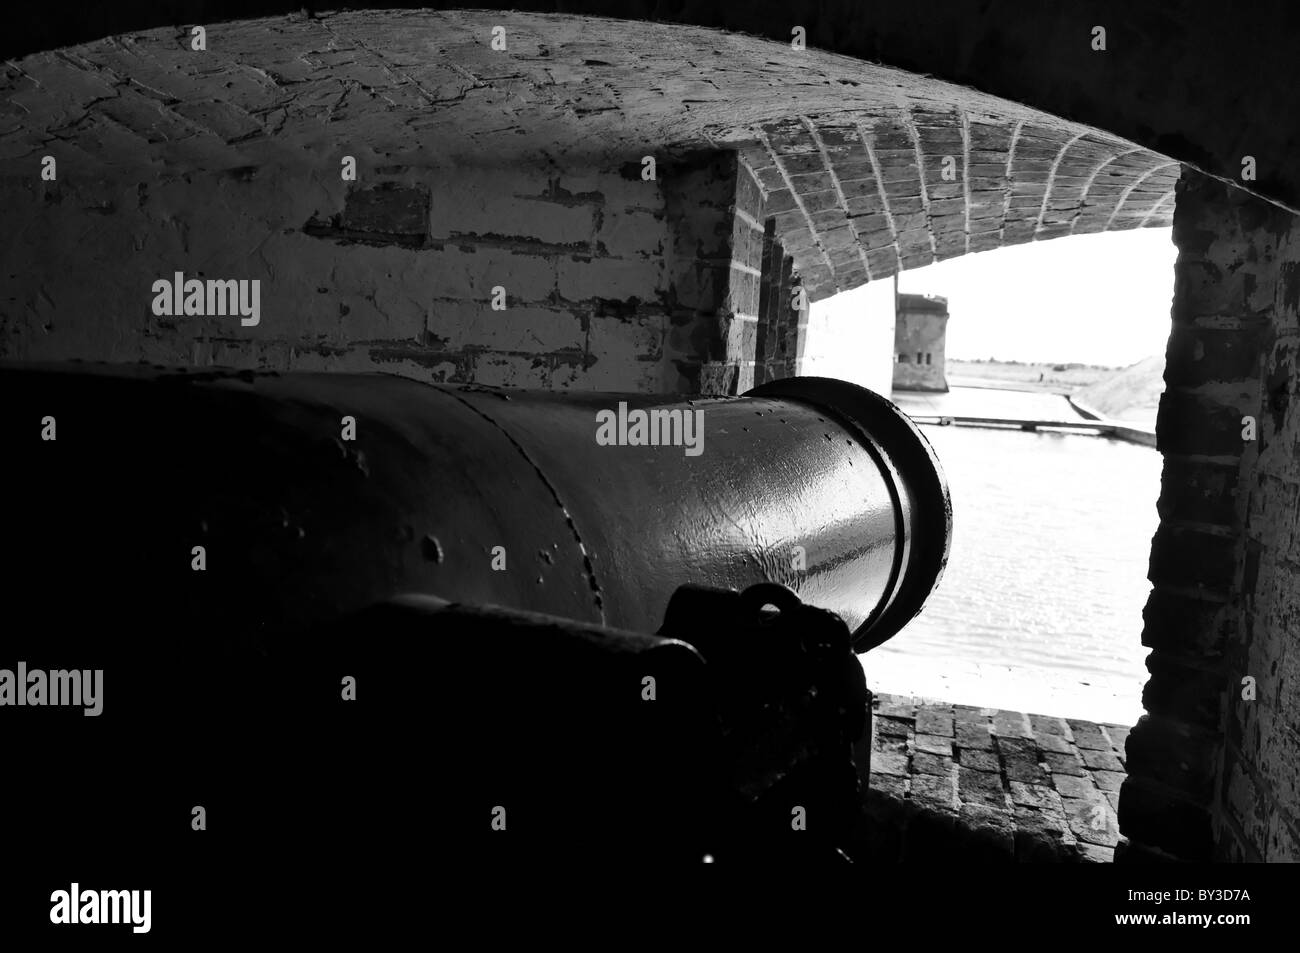 Canon pointing in direction of moat at Fort Pulaski in Savannah, Georgia. - Stock Image